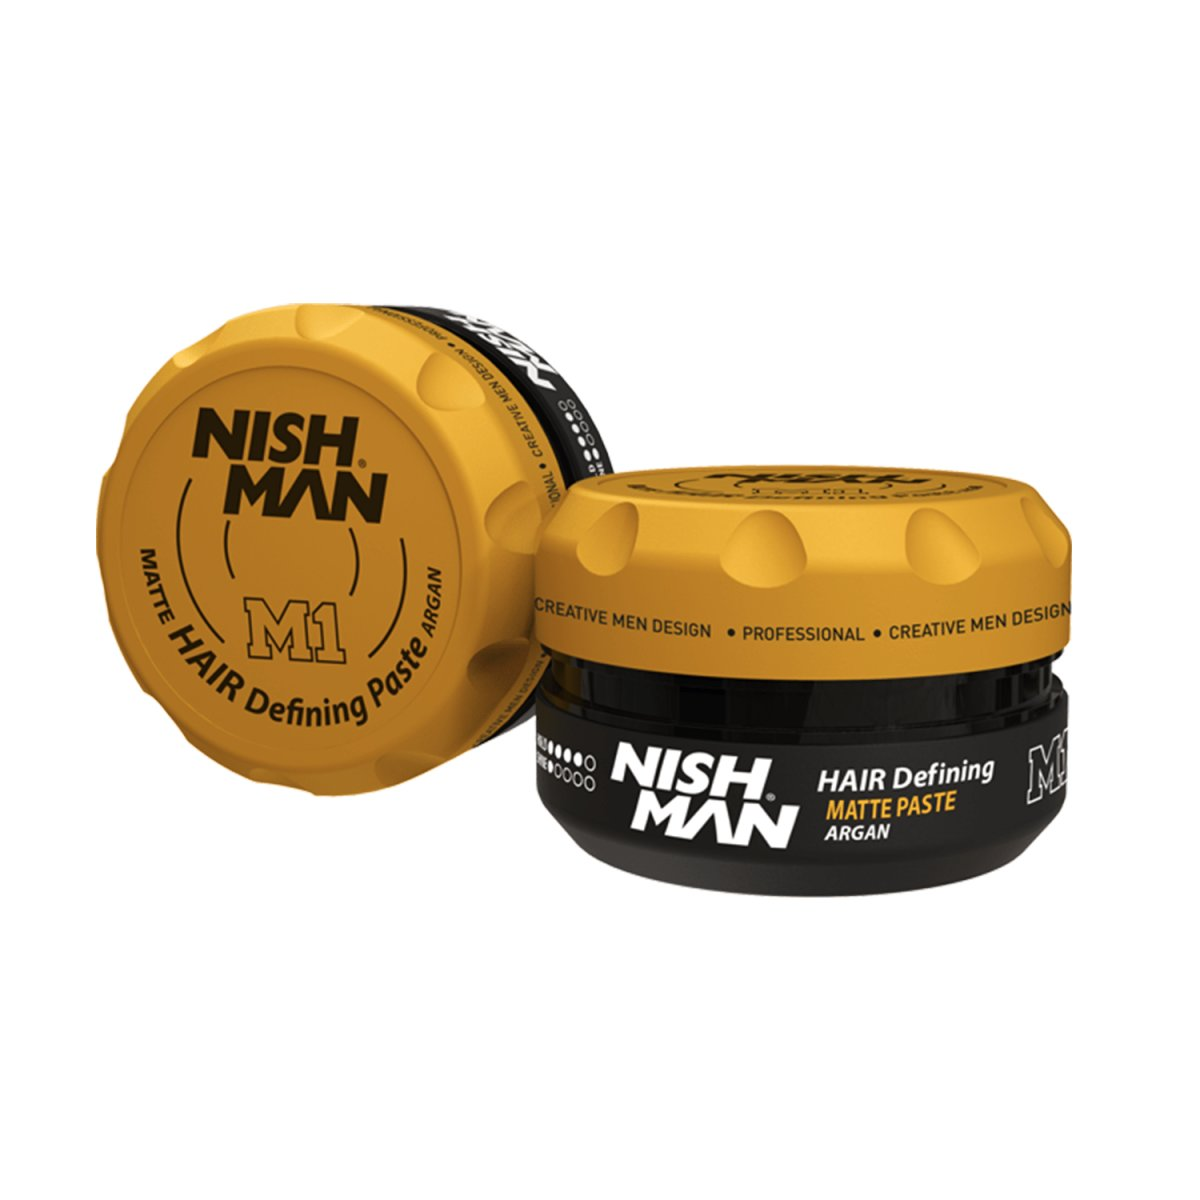 NISHMAN M1 Matte Hair Styling Defining Paste mit Argan 100 ml